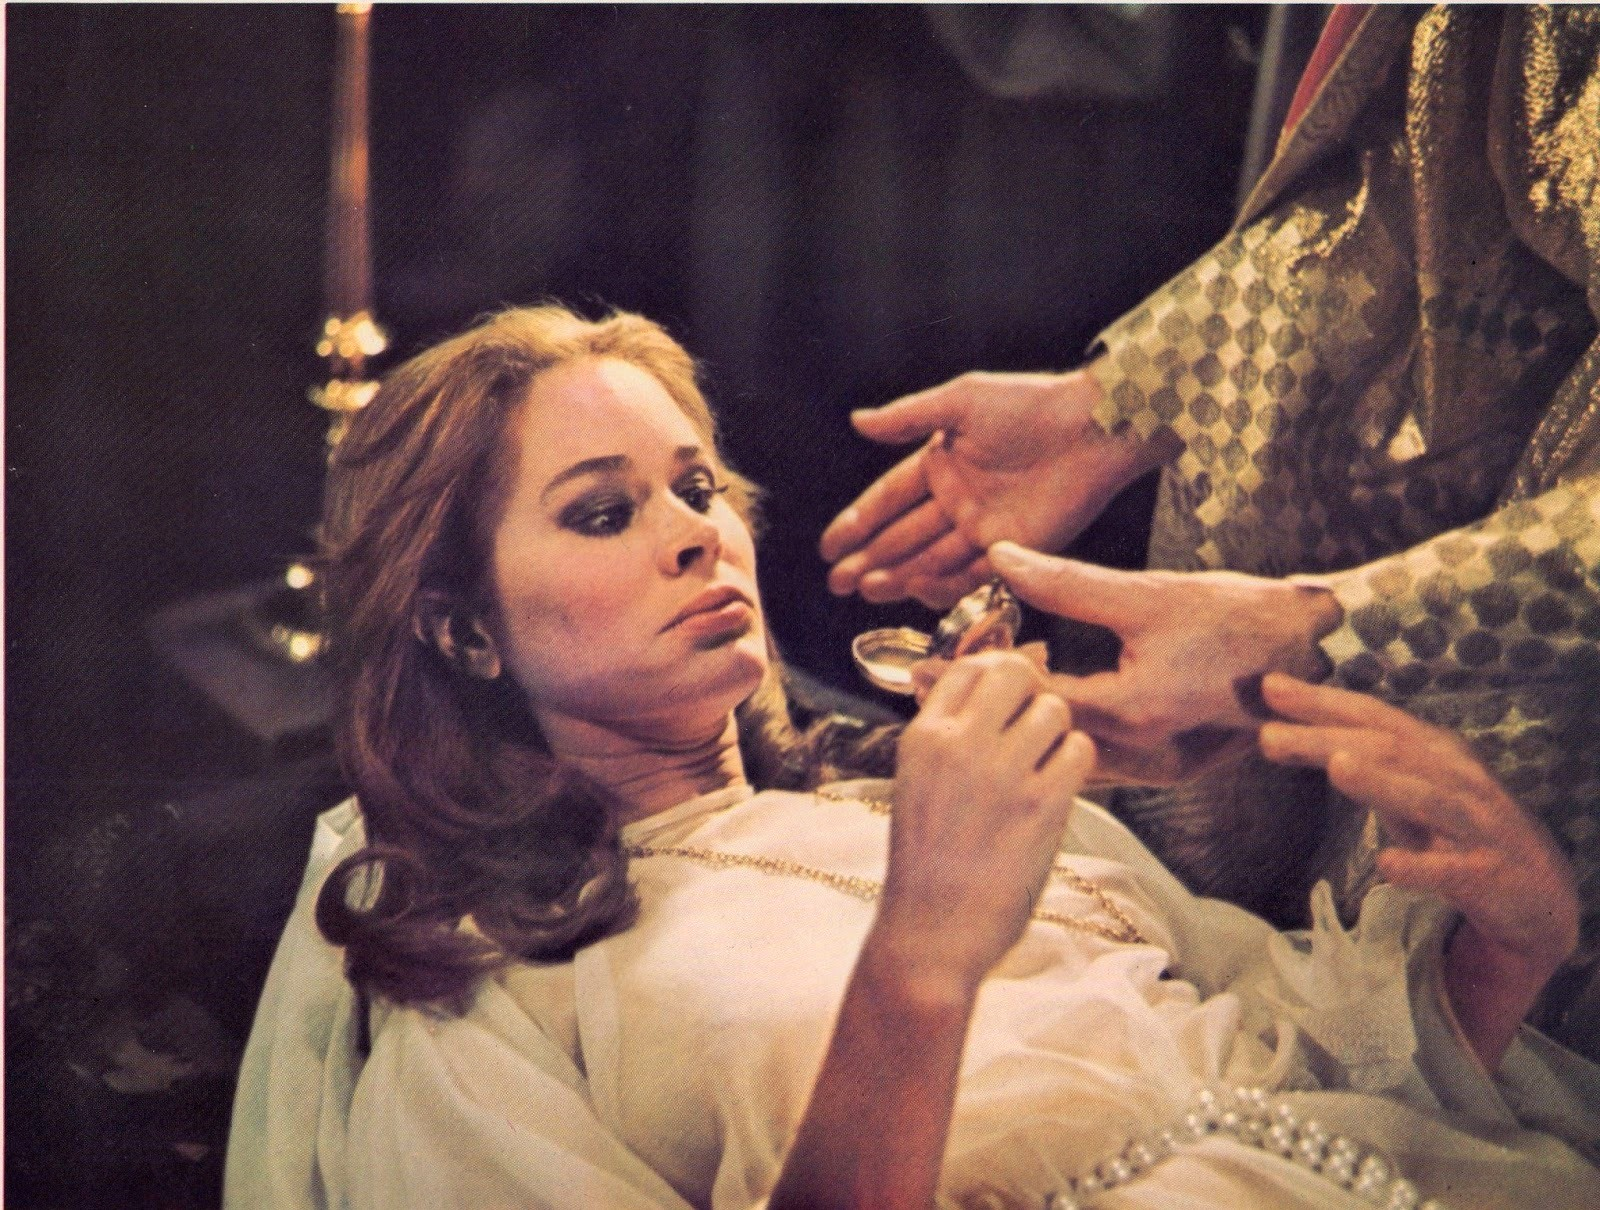 Karen Black in the midst of occult rituals in The Pyx (1973)